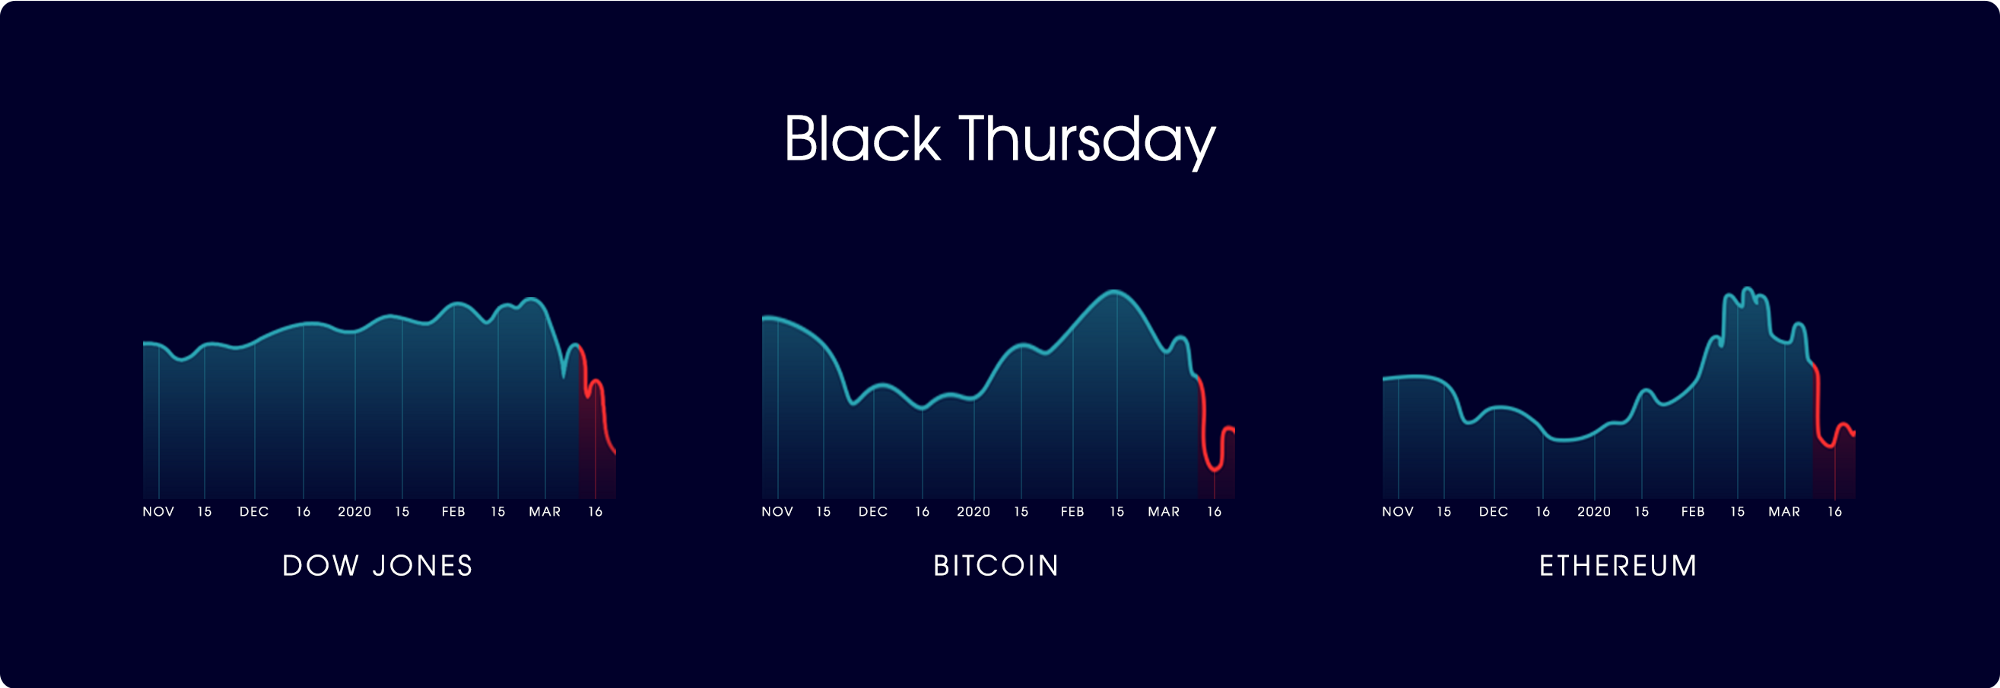 The Dow Jones, Bitcoin, and Ethereum charts after the price plummeted on Black Thursday.